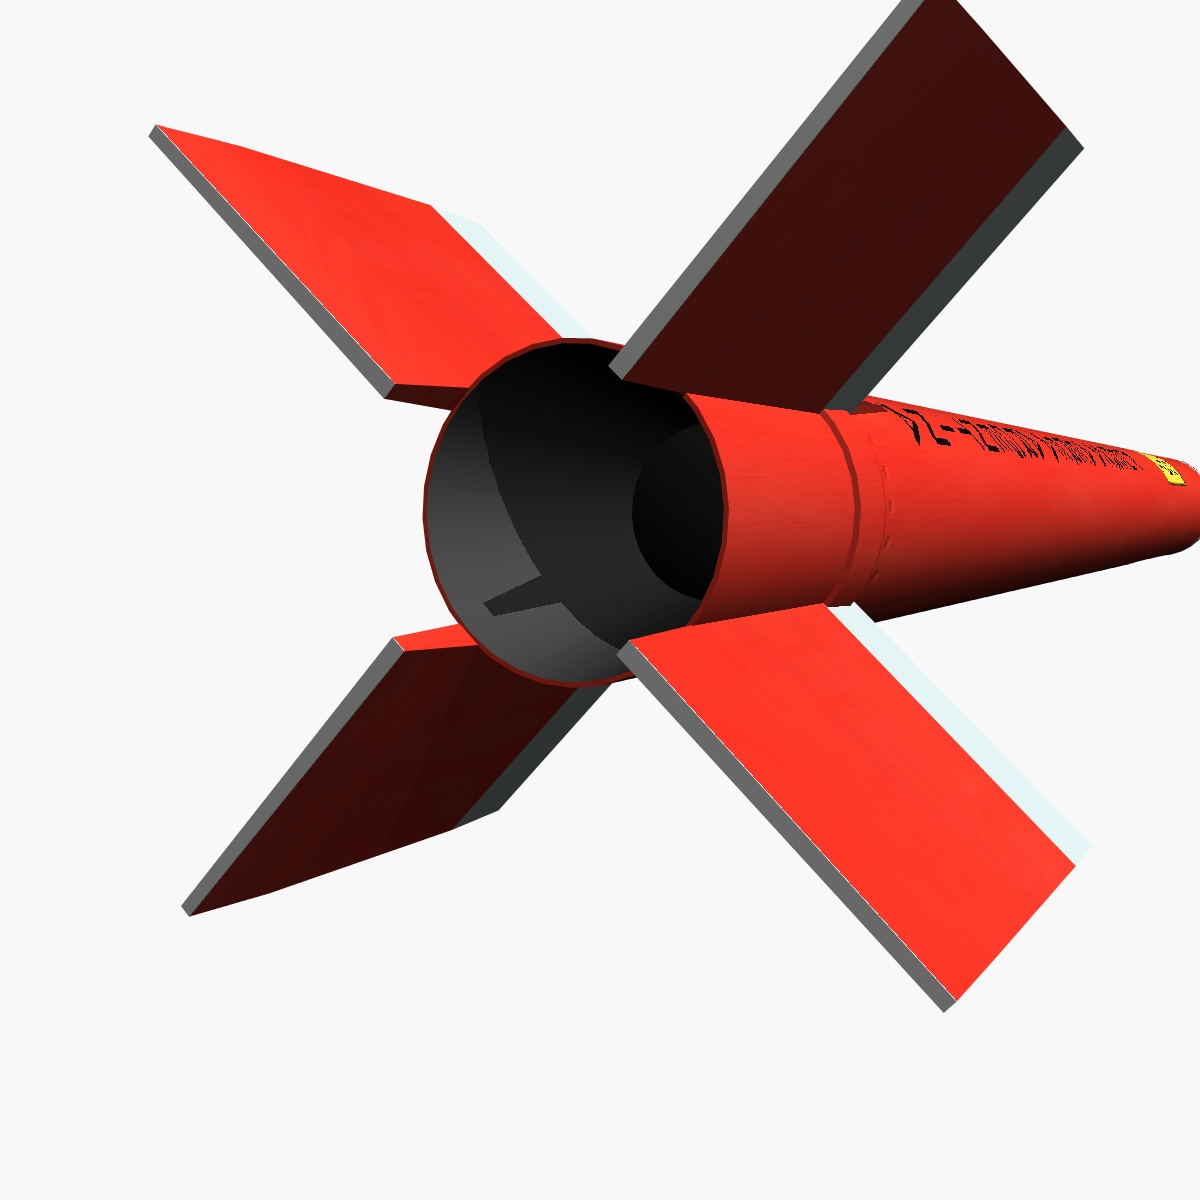 canopus ii rocket 3d model 3ds dxf fbx blend cob dae x obj 217720